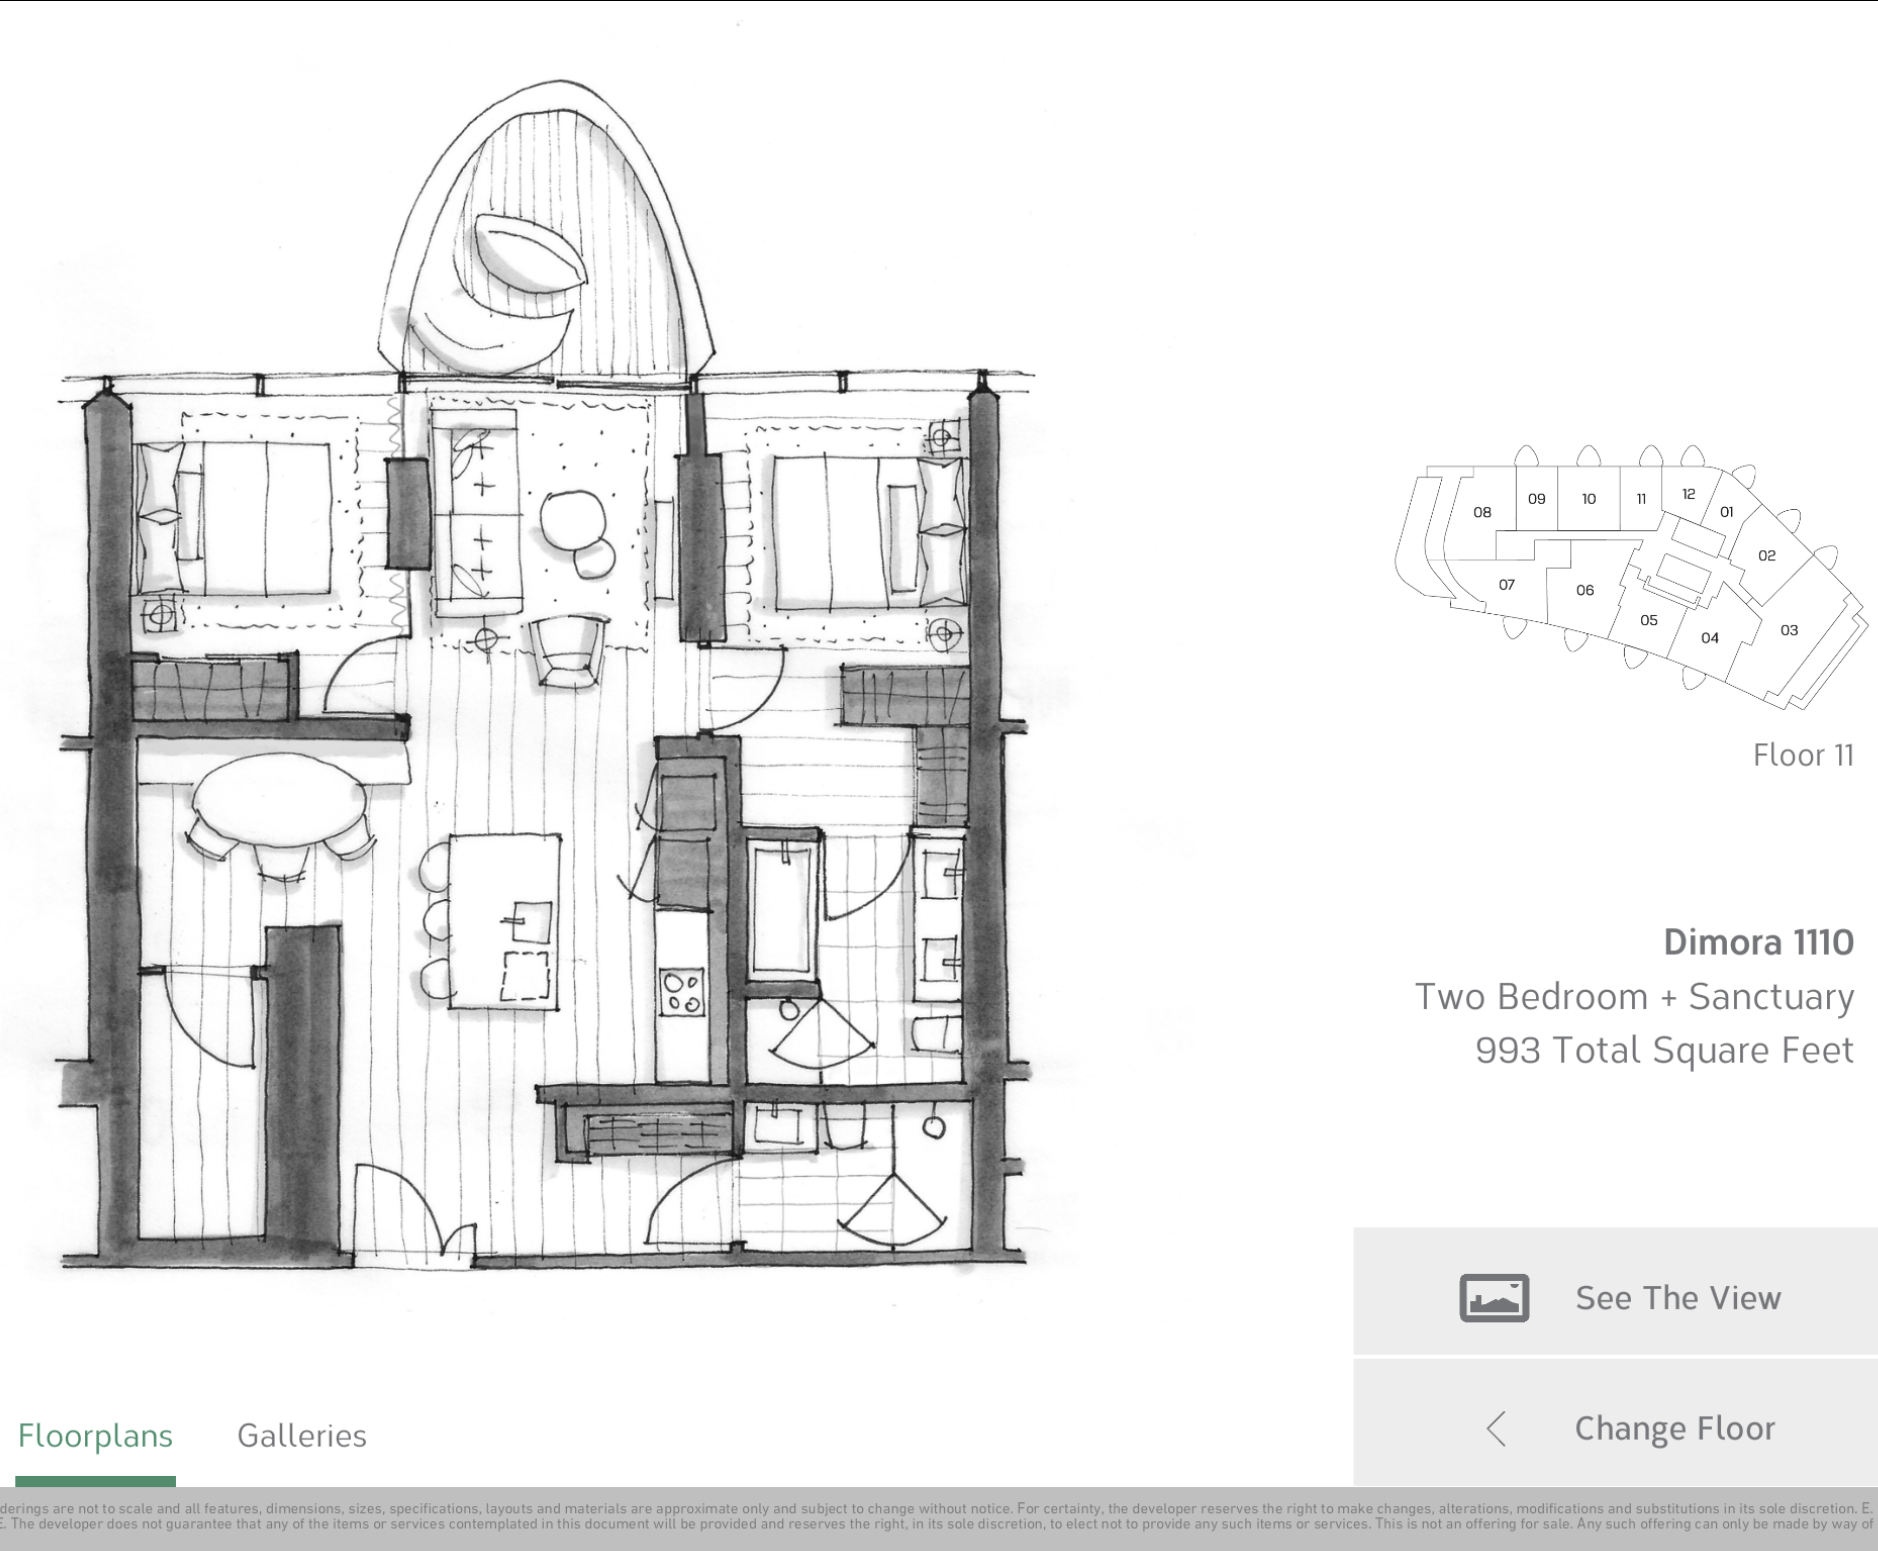 Two Bedroom 1110